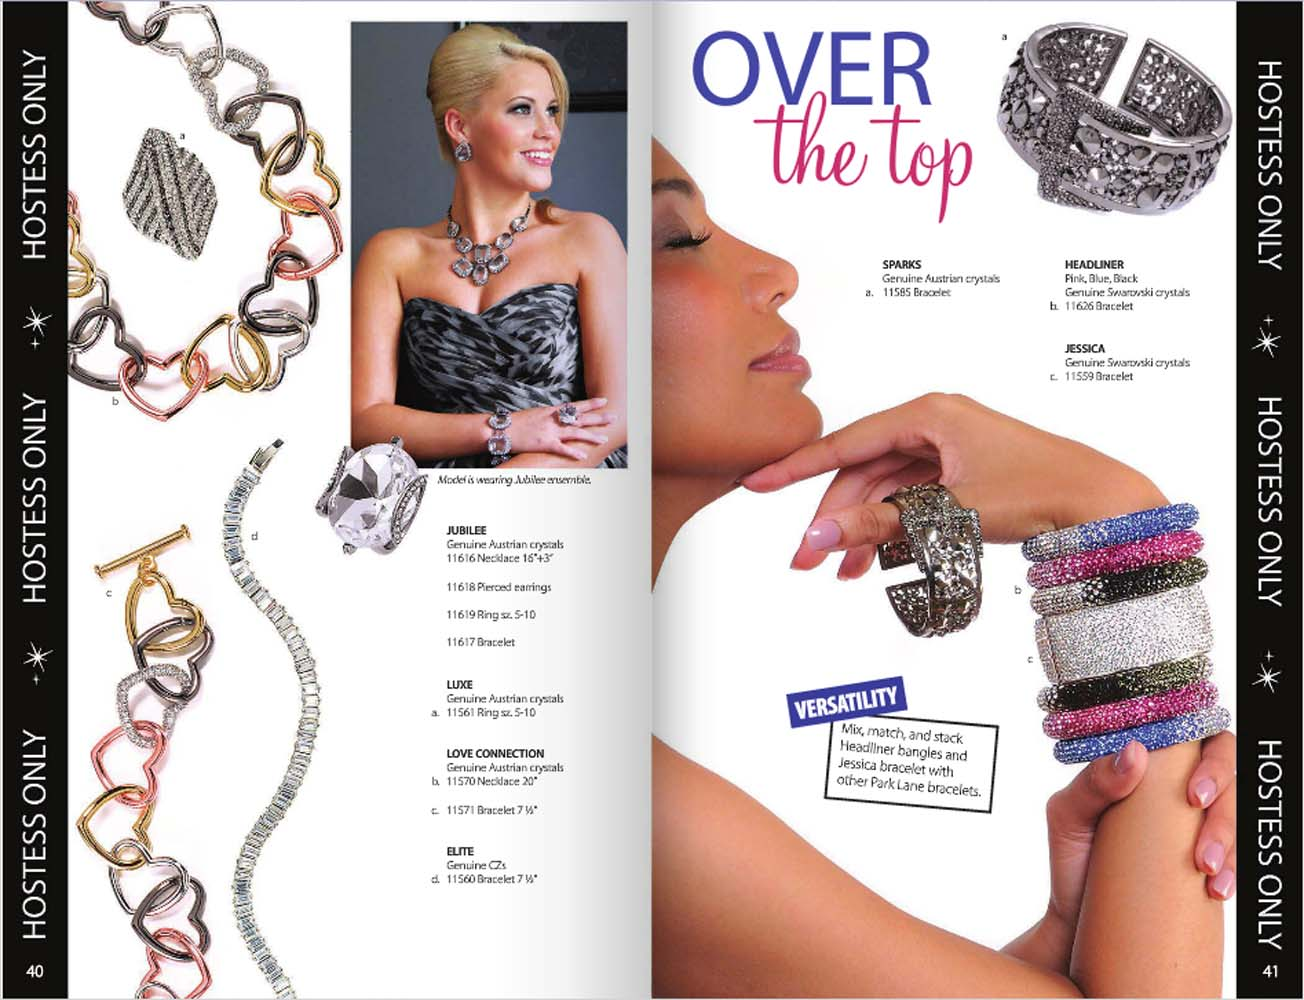 """Catalog pages from Park Lane jewelry catalog with heart shaped chains featured on the left and inset shot of designer woman and on right model shot of woman holding sparkly bangles on wrist and thumb with """"Over the top"""" caption Jewelry Photography"""